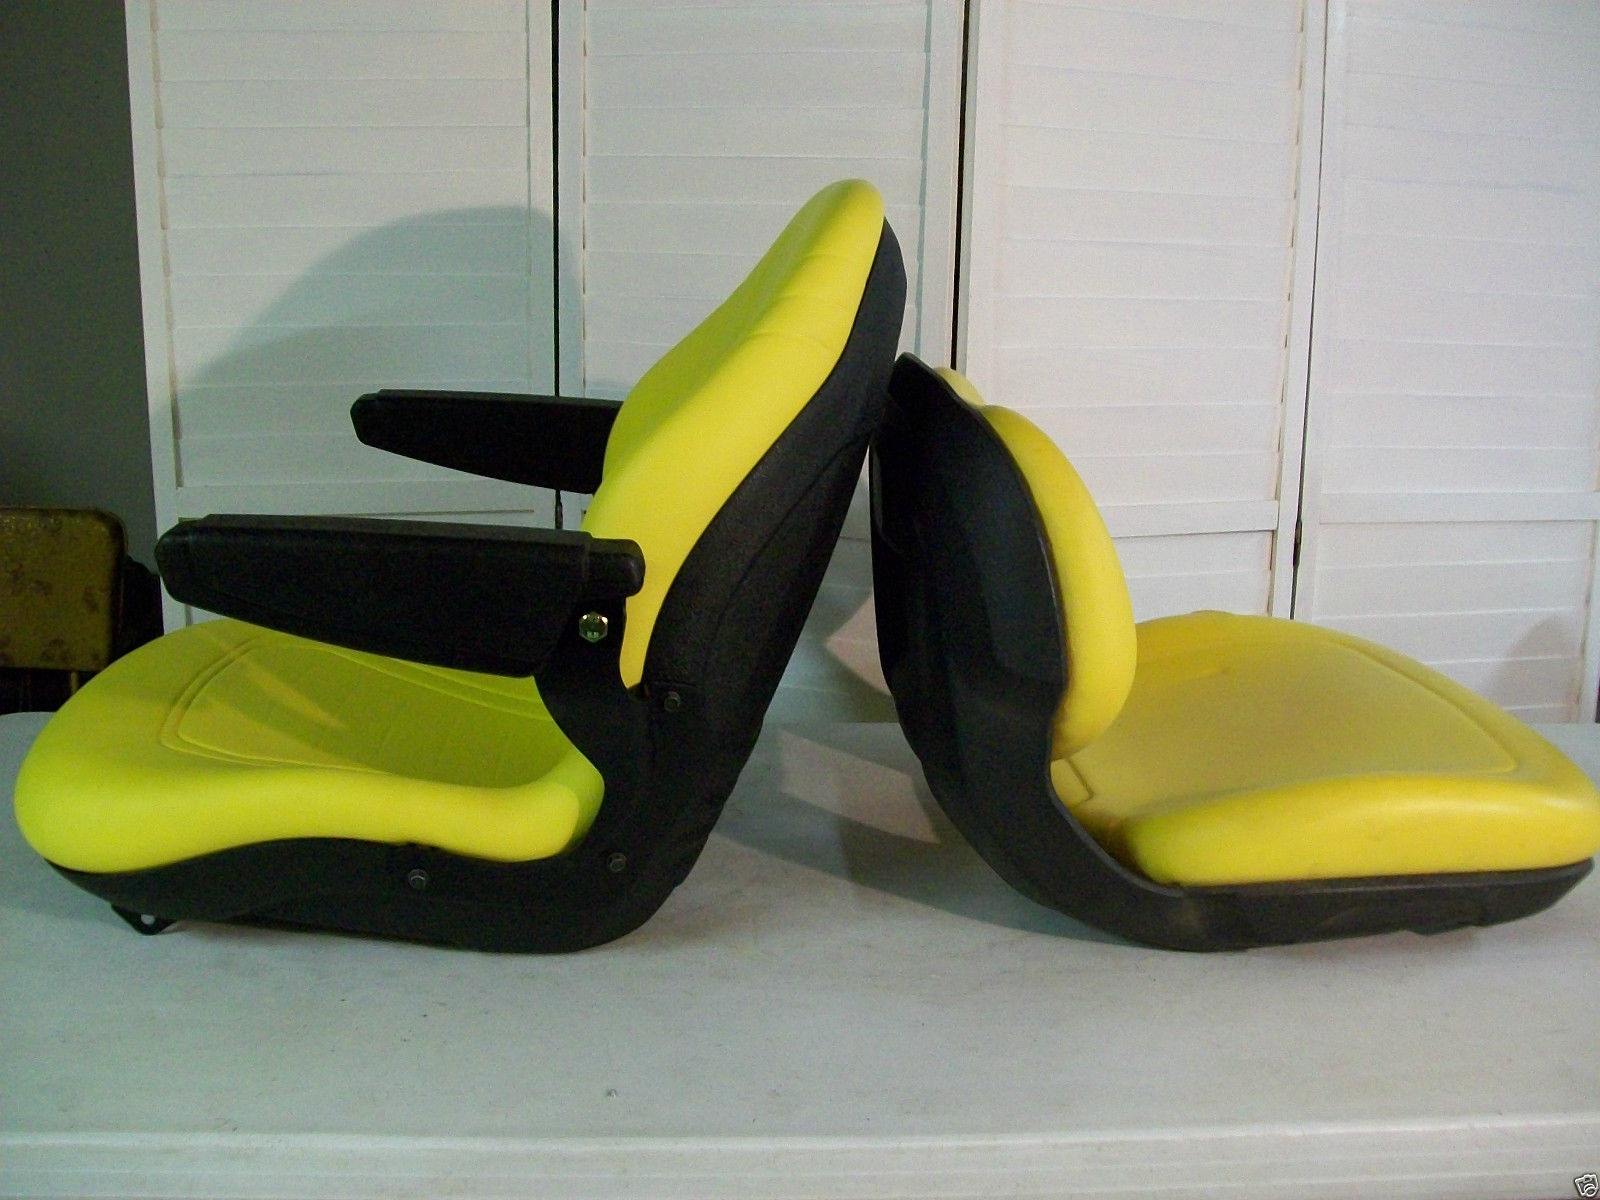 hight resolution of yellow seat for john deere x300 x300r x320 x340 x360 x500 x520 x530 garden tractors ki